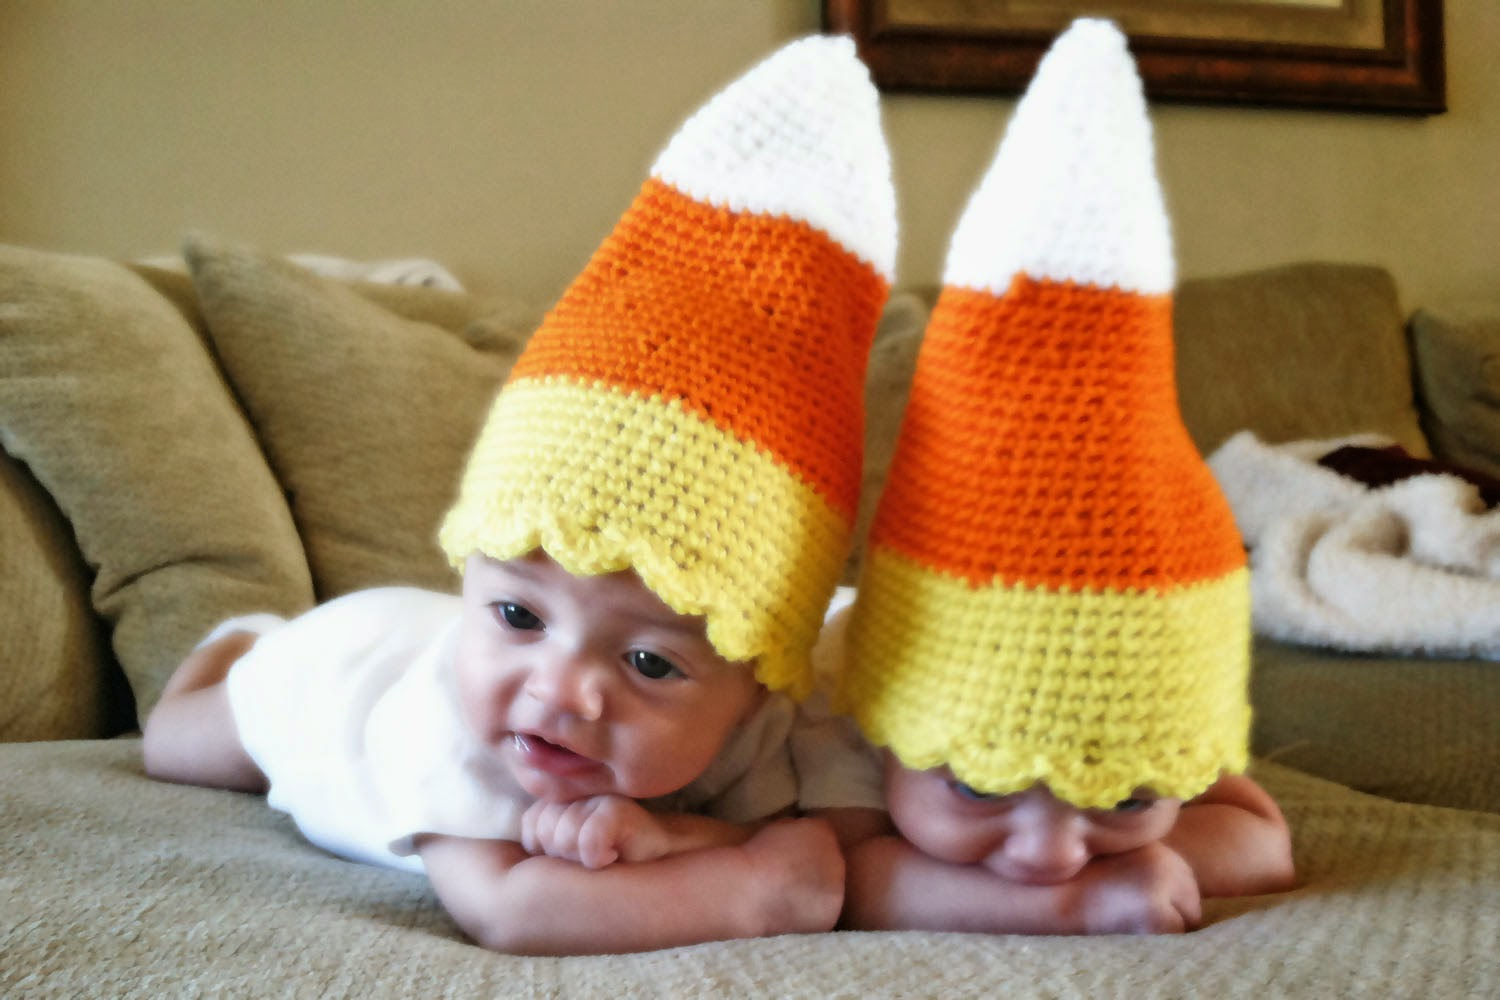 Free Crochet Patterns For Baby Halloween Hats : Crochet Rochelle: Baby Candy Corn Hat